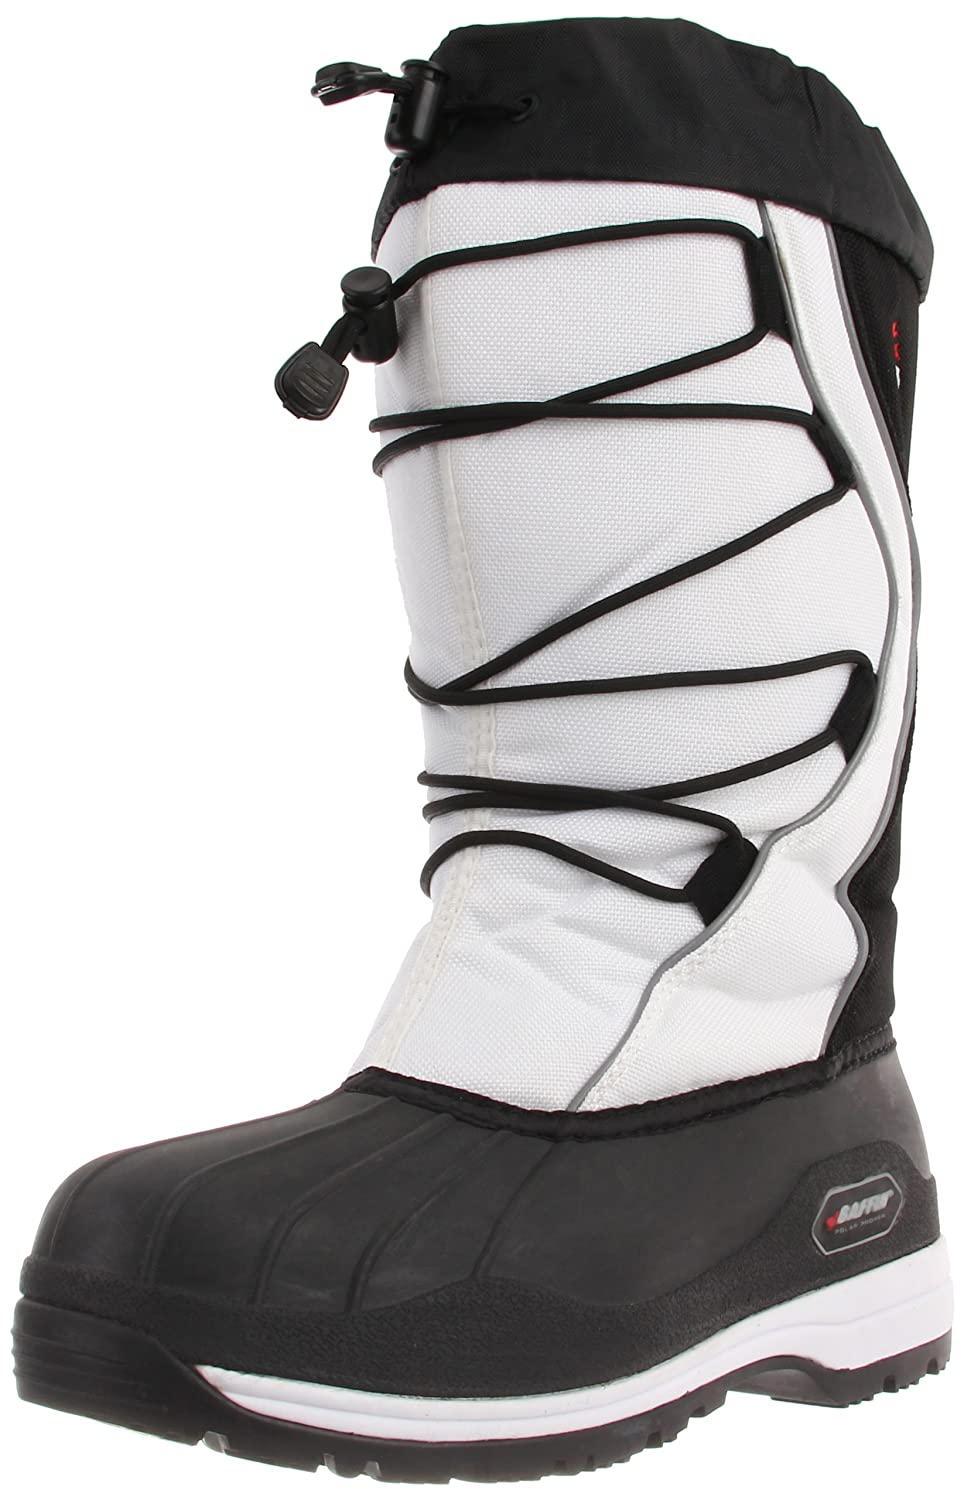 Baffin Women's Ice Field Insulated Boot B006SWJX7K 11 B(M) US|White